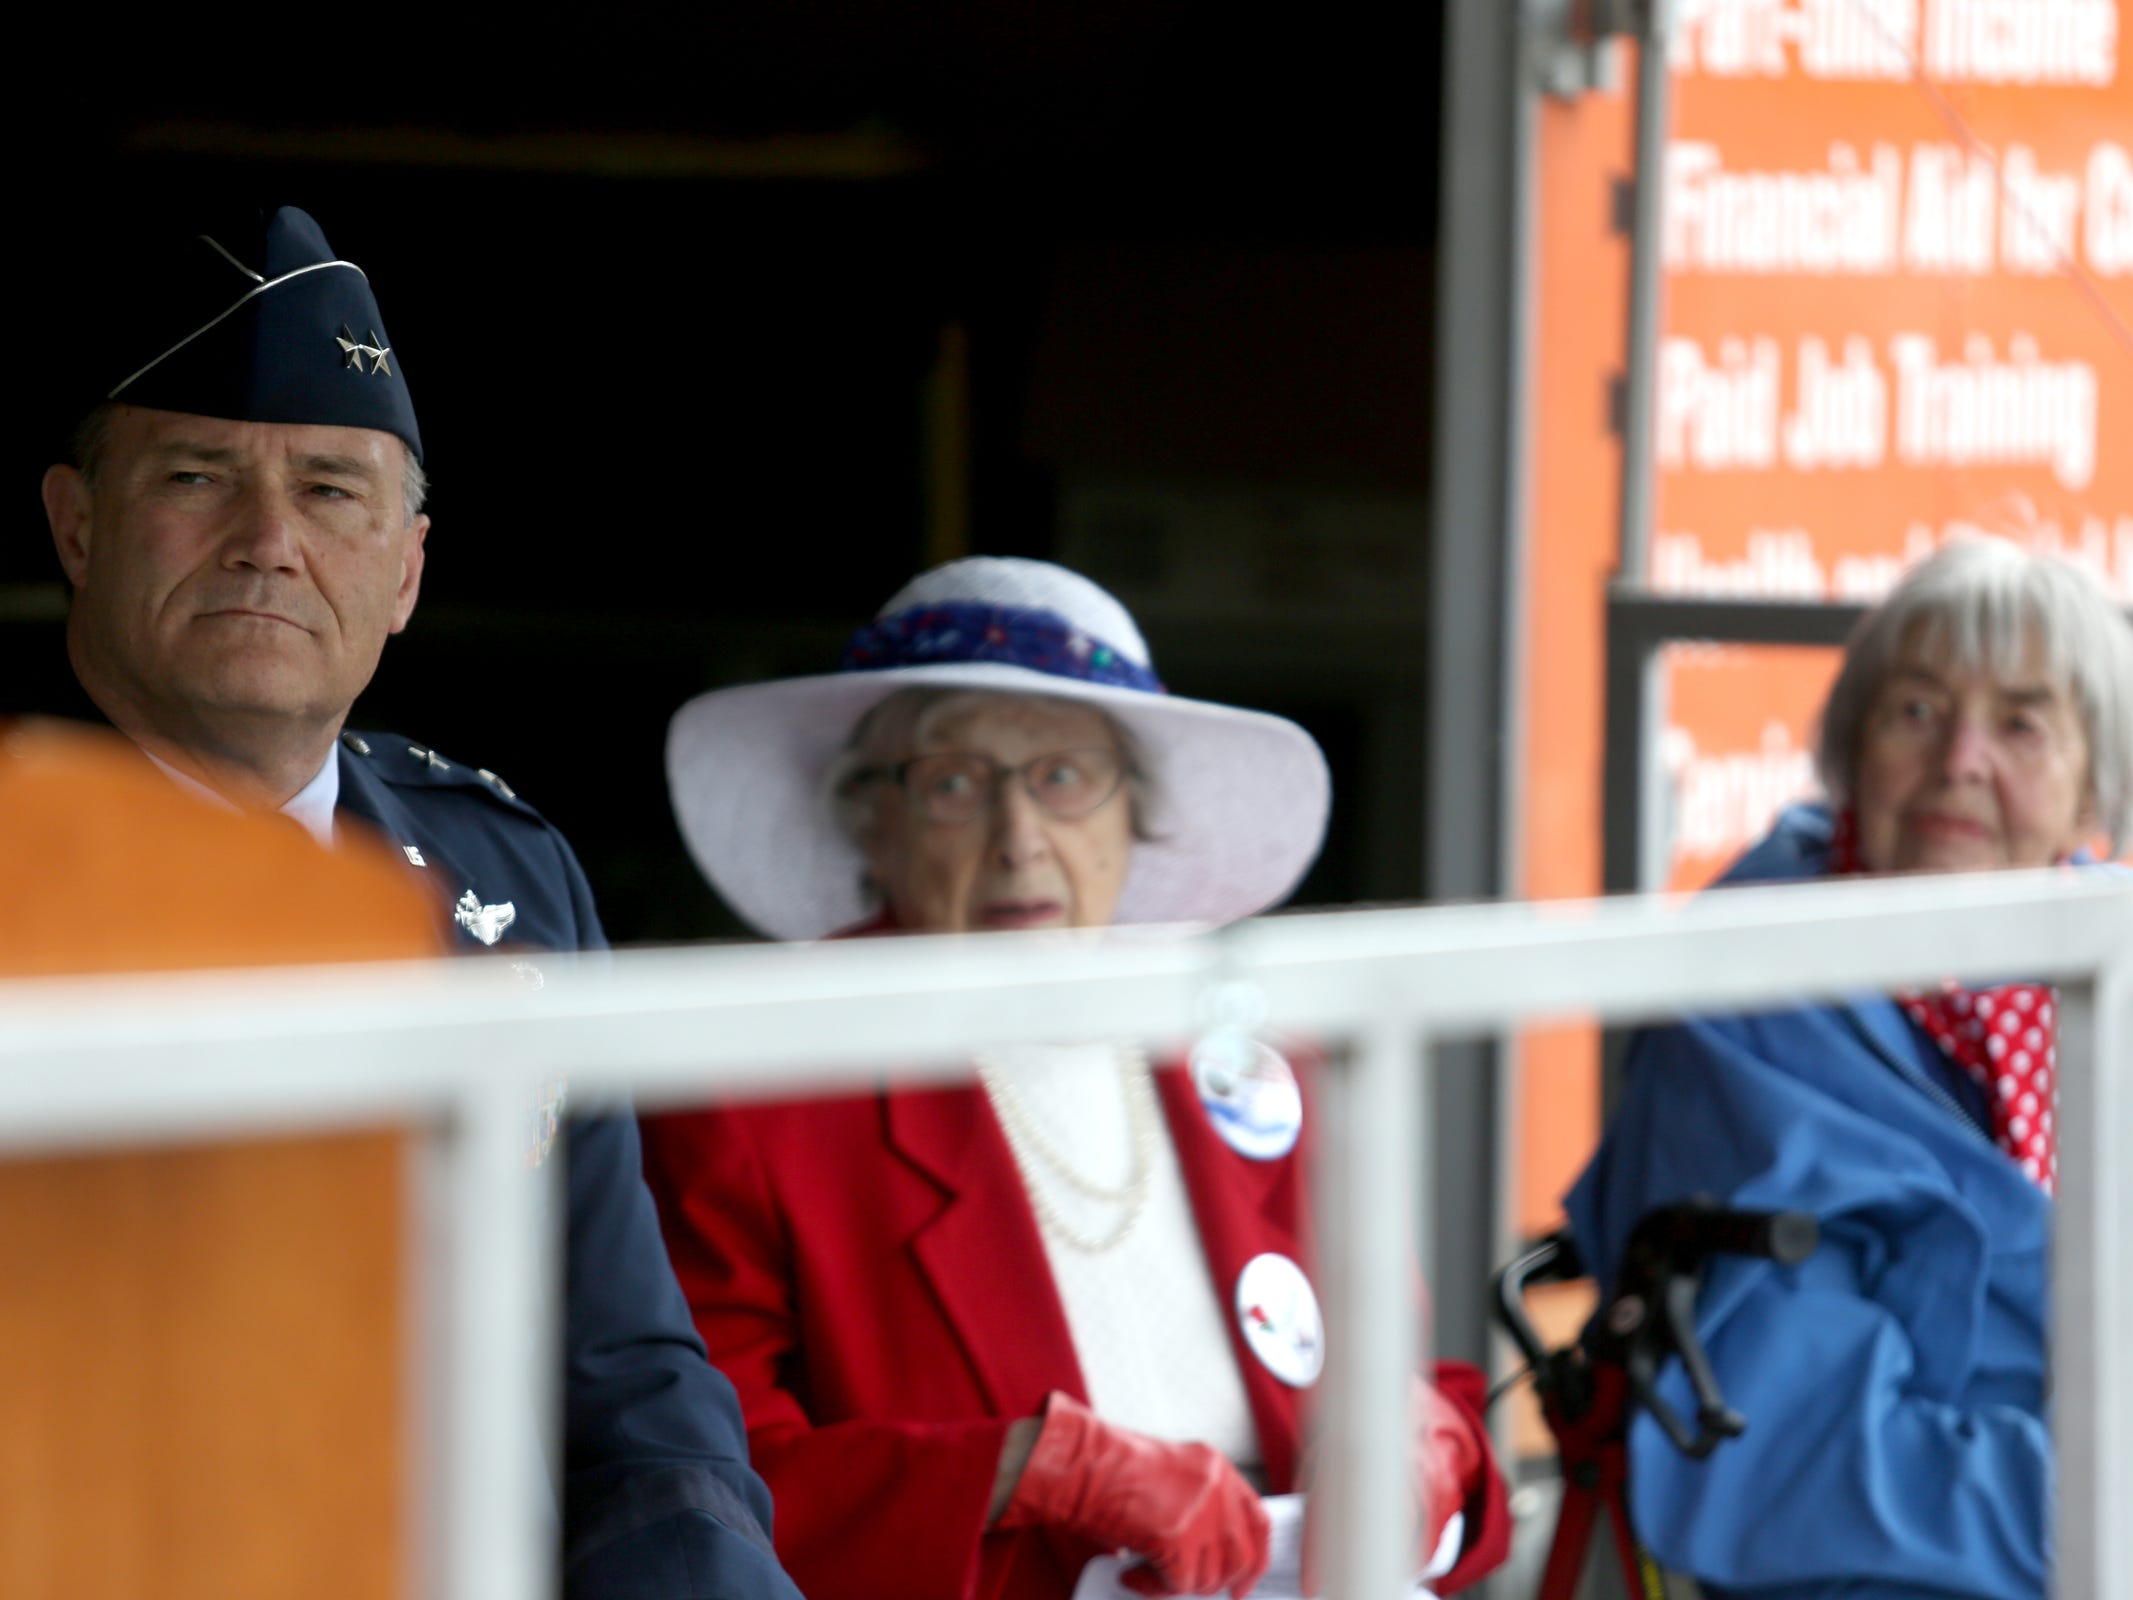 Michael E. Stencel, the Adjutant General of Oregon, sits with Joy Beebe, a World War II English war bride, and Rita Hathaway, a real-life Rosie the Riveter who worked in a Boeing plant during World War II, during an Armed Forces Day celebration at the Oregon State Capitol in Salem on May 14, 2019.